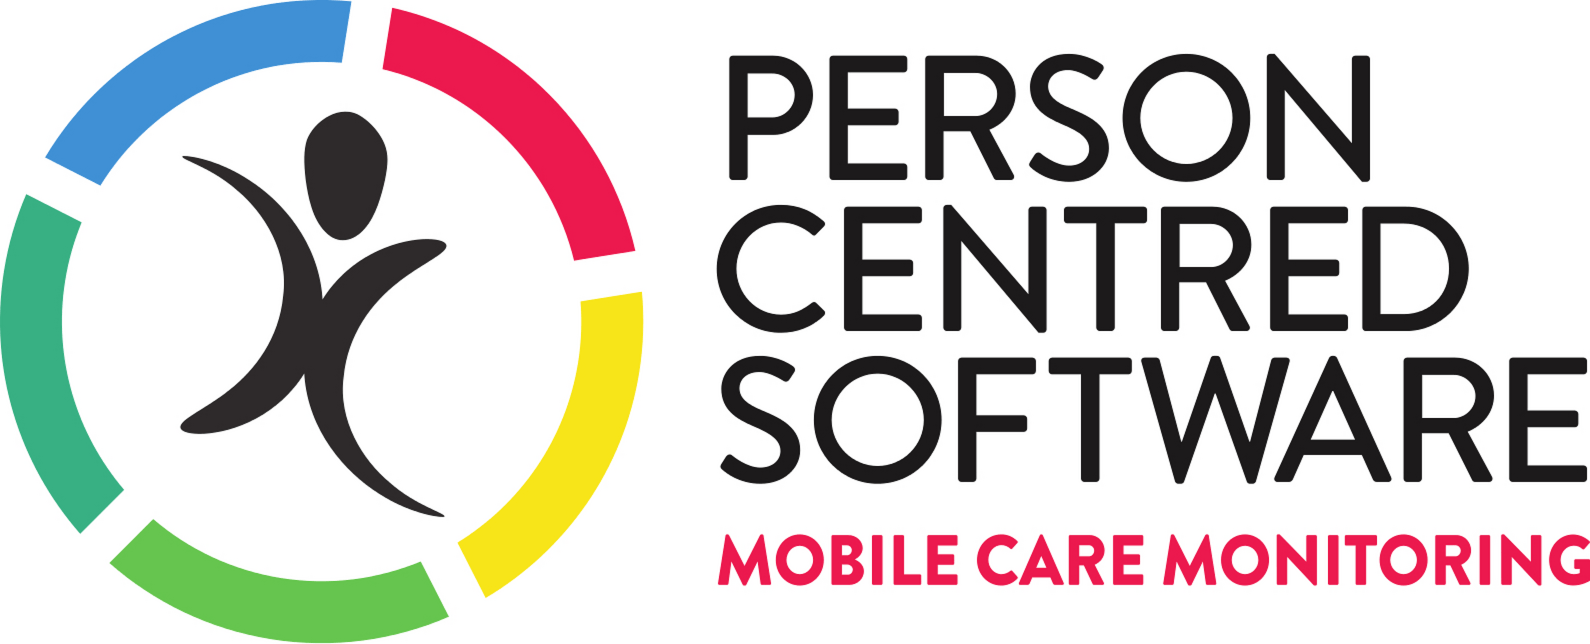 Person centred Software